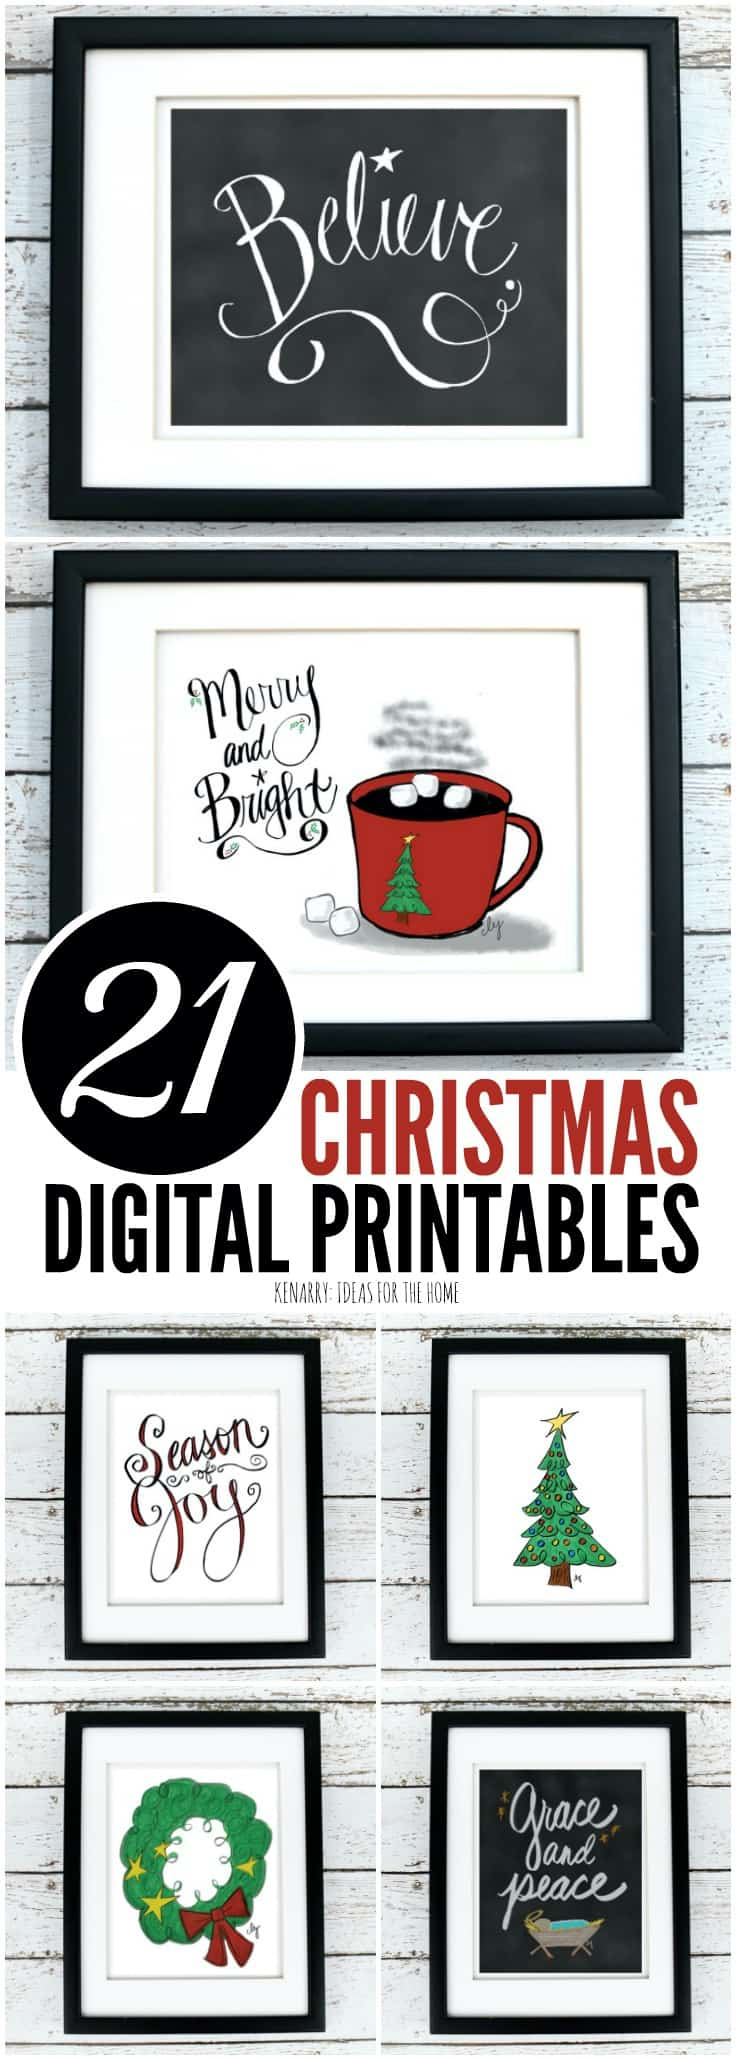 The Christmas printables collection from Ideas for the Home by Kenarry® is available as digital printable art on Etsy. Printables are a great way to decorate the walls of your home on a budget for Christmas and the holiday season.